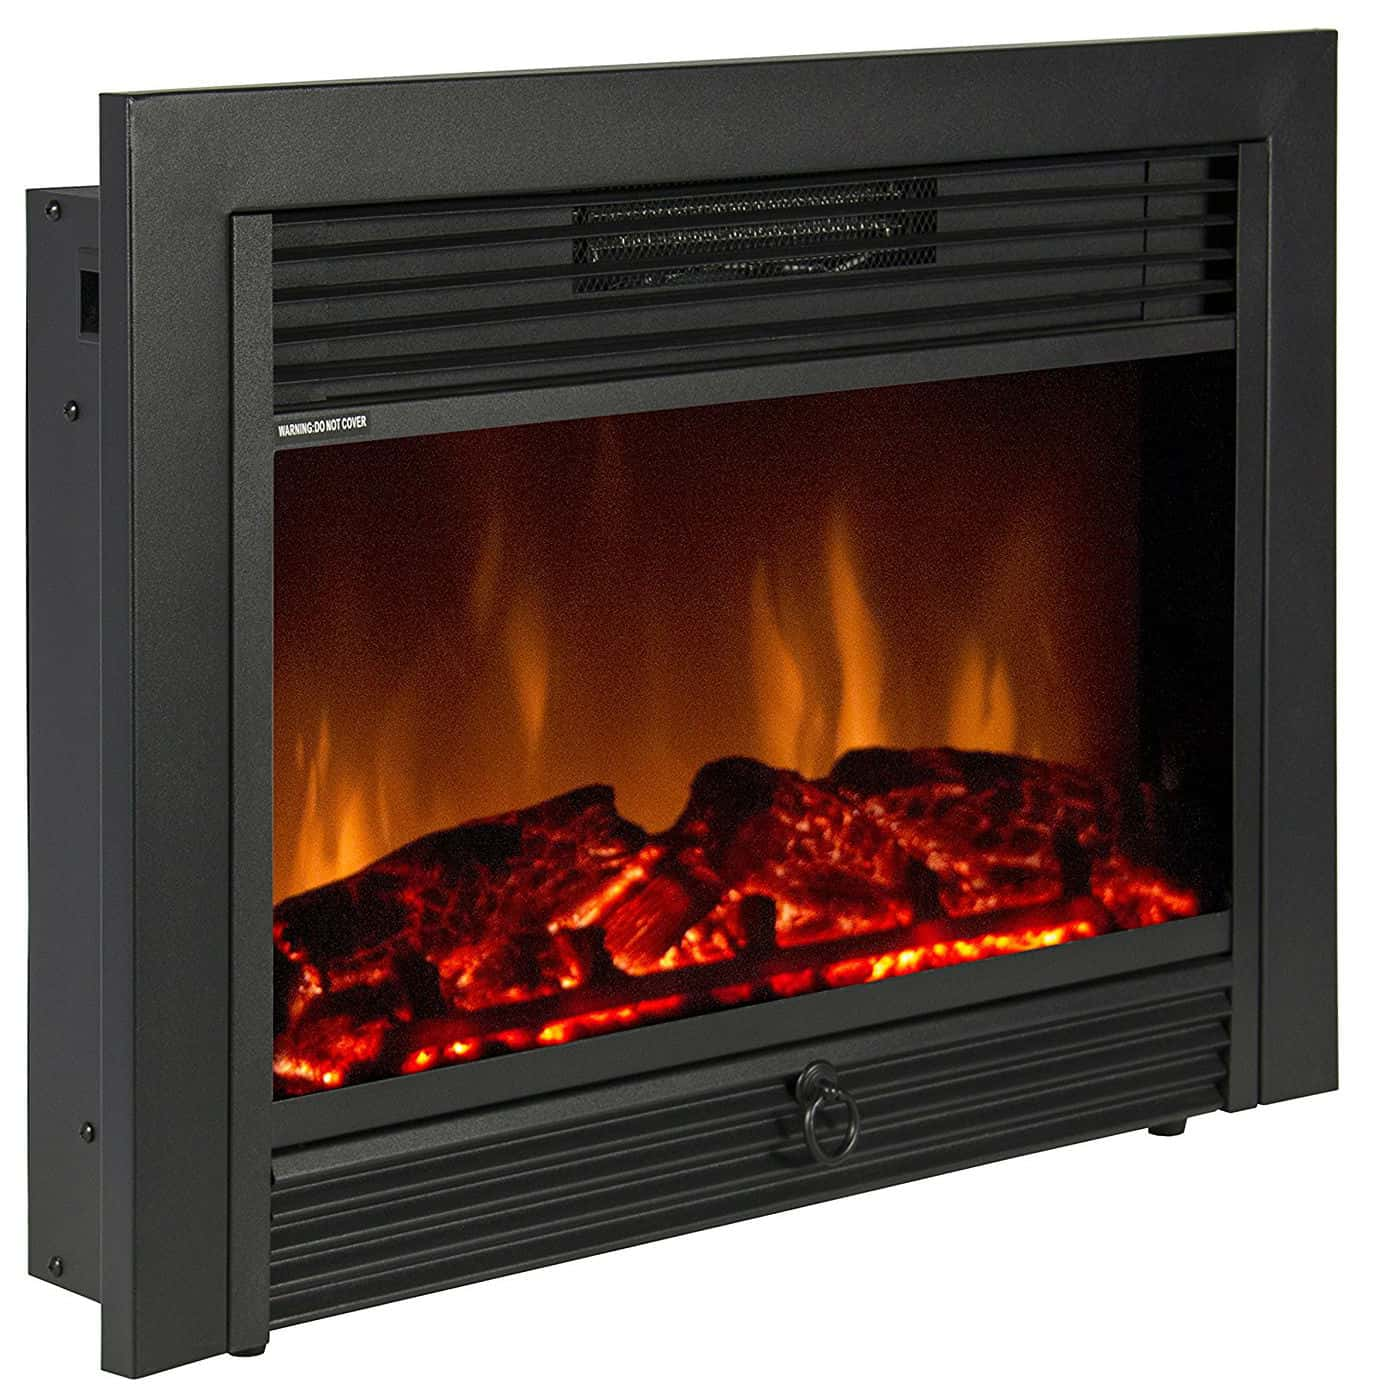 BCP SKY1826 Embedded Fireplace Electric Insert Heater Glass View Log Flame Remote Home